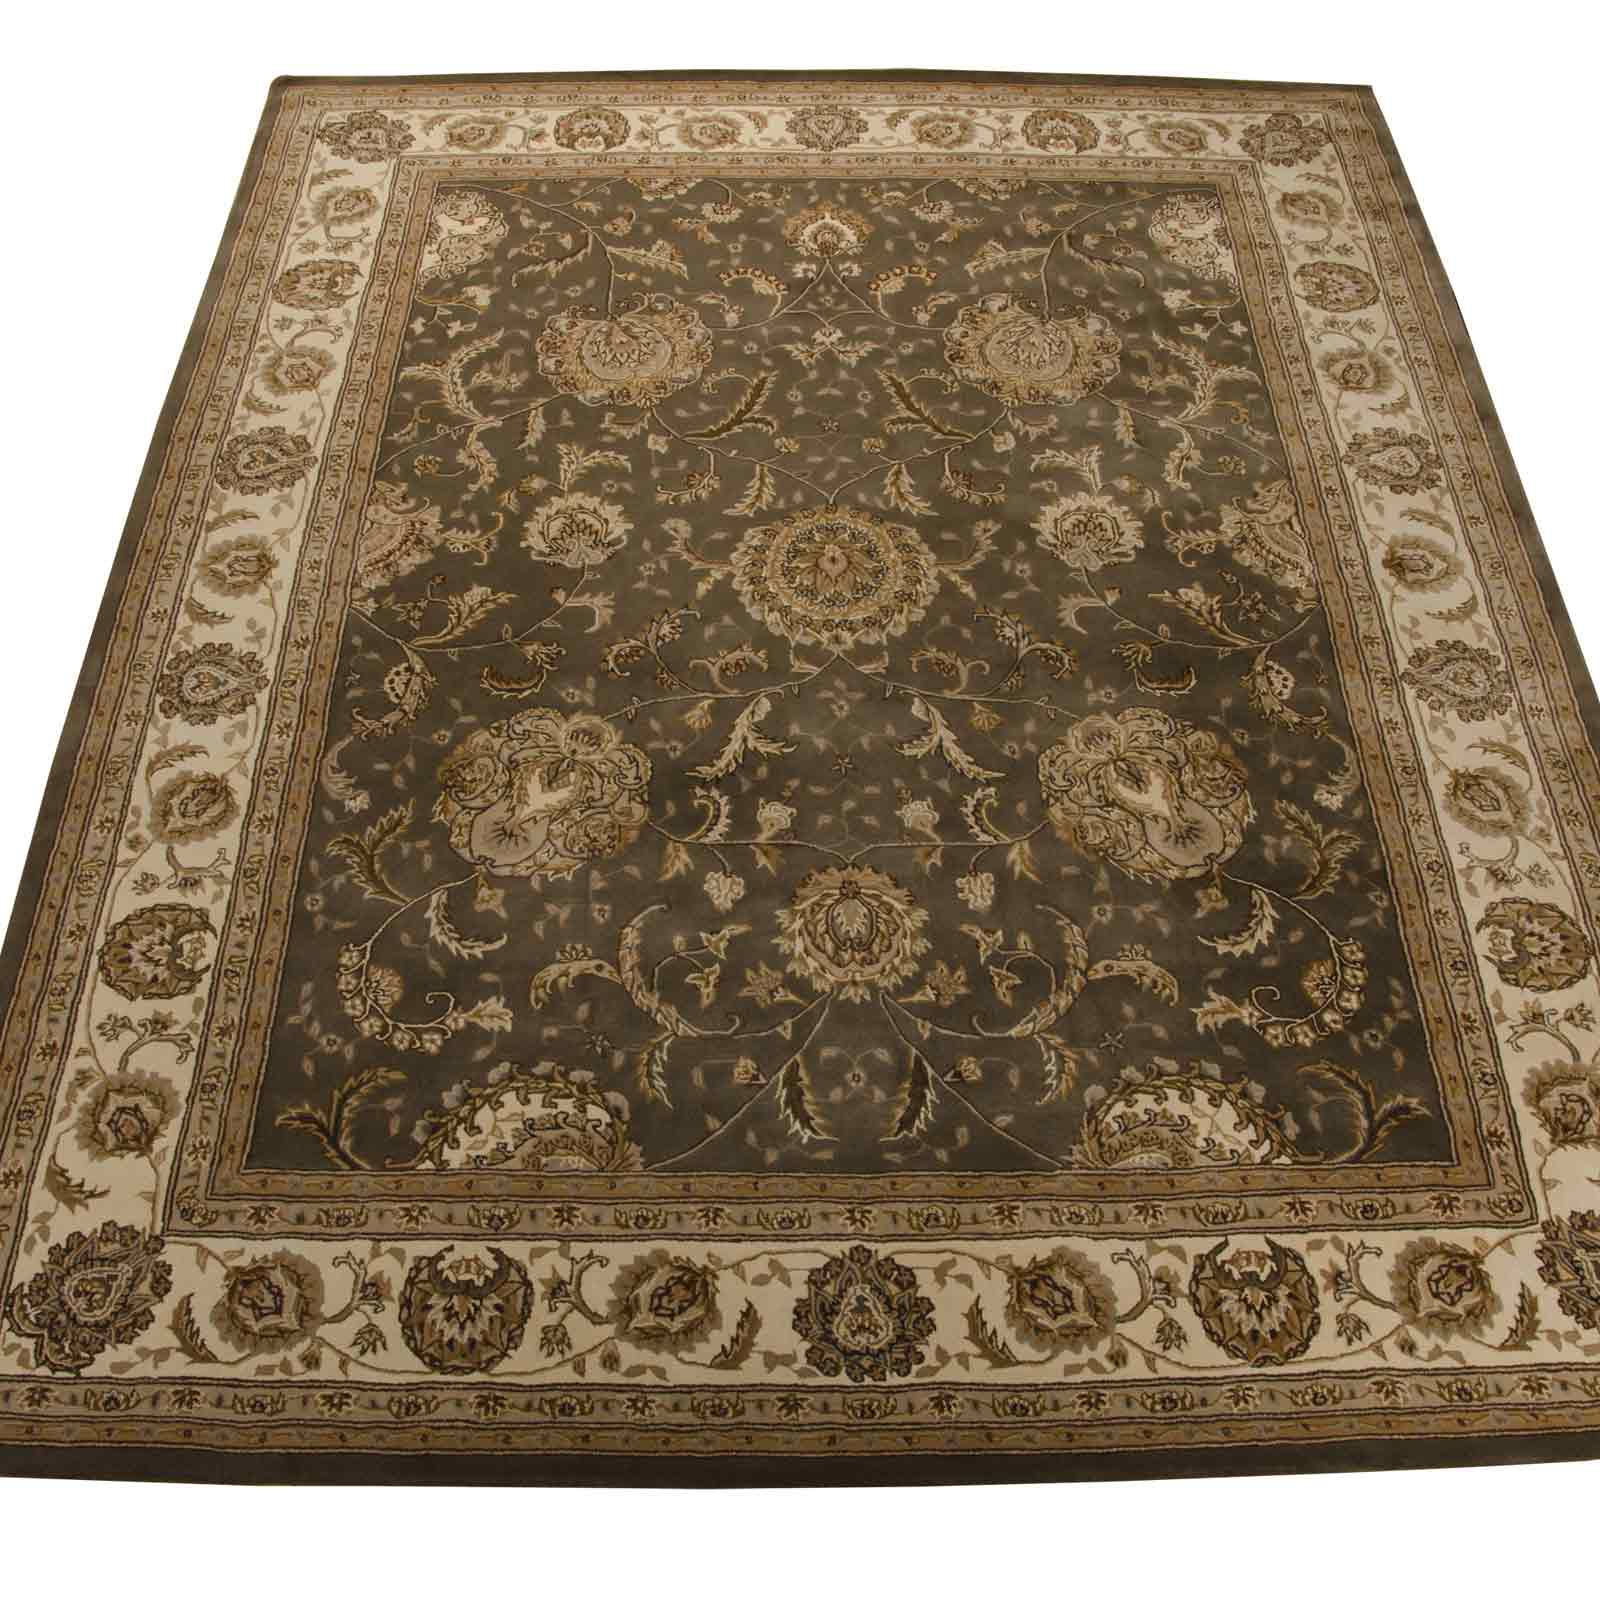 Nourison 2000 Traditional Rugs 2206 SLT in Slate Grey